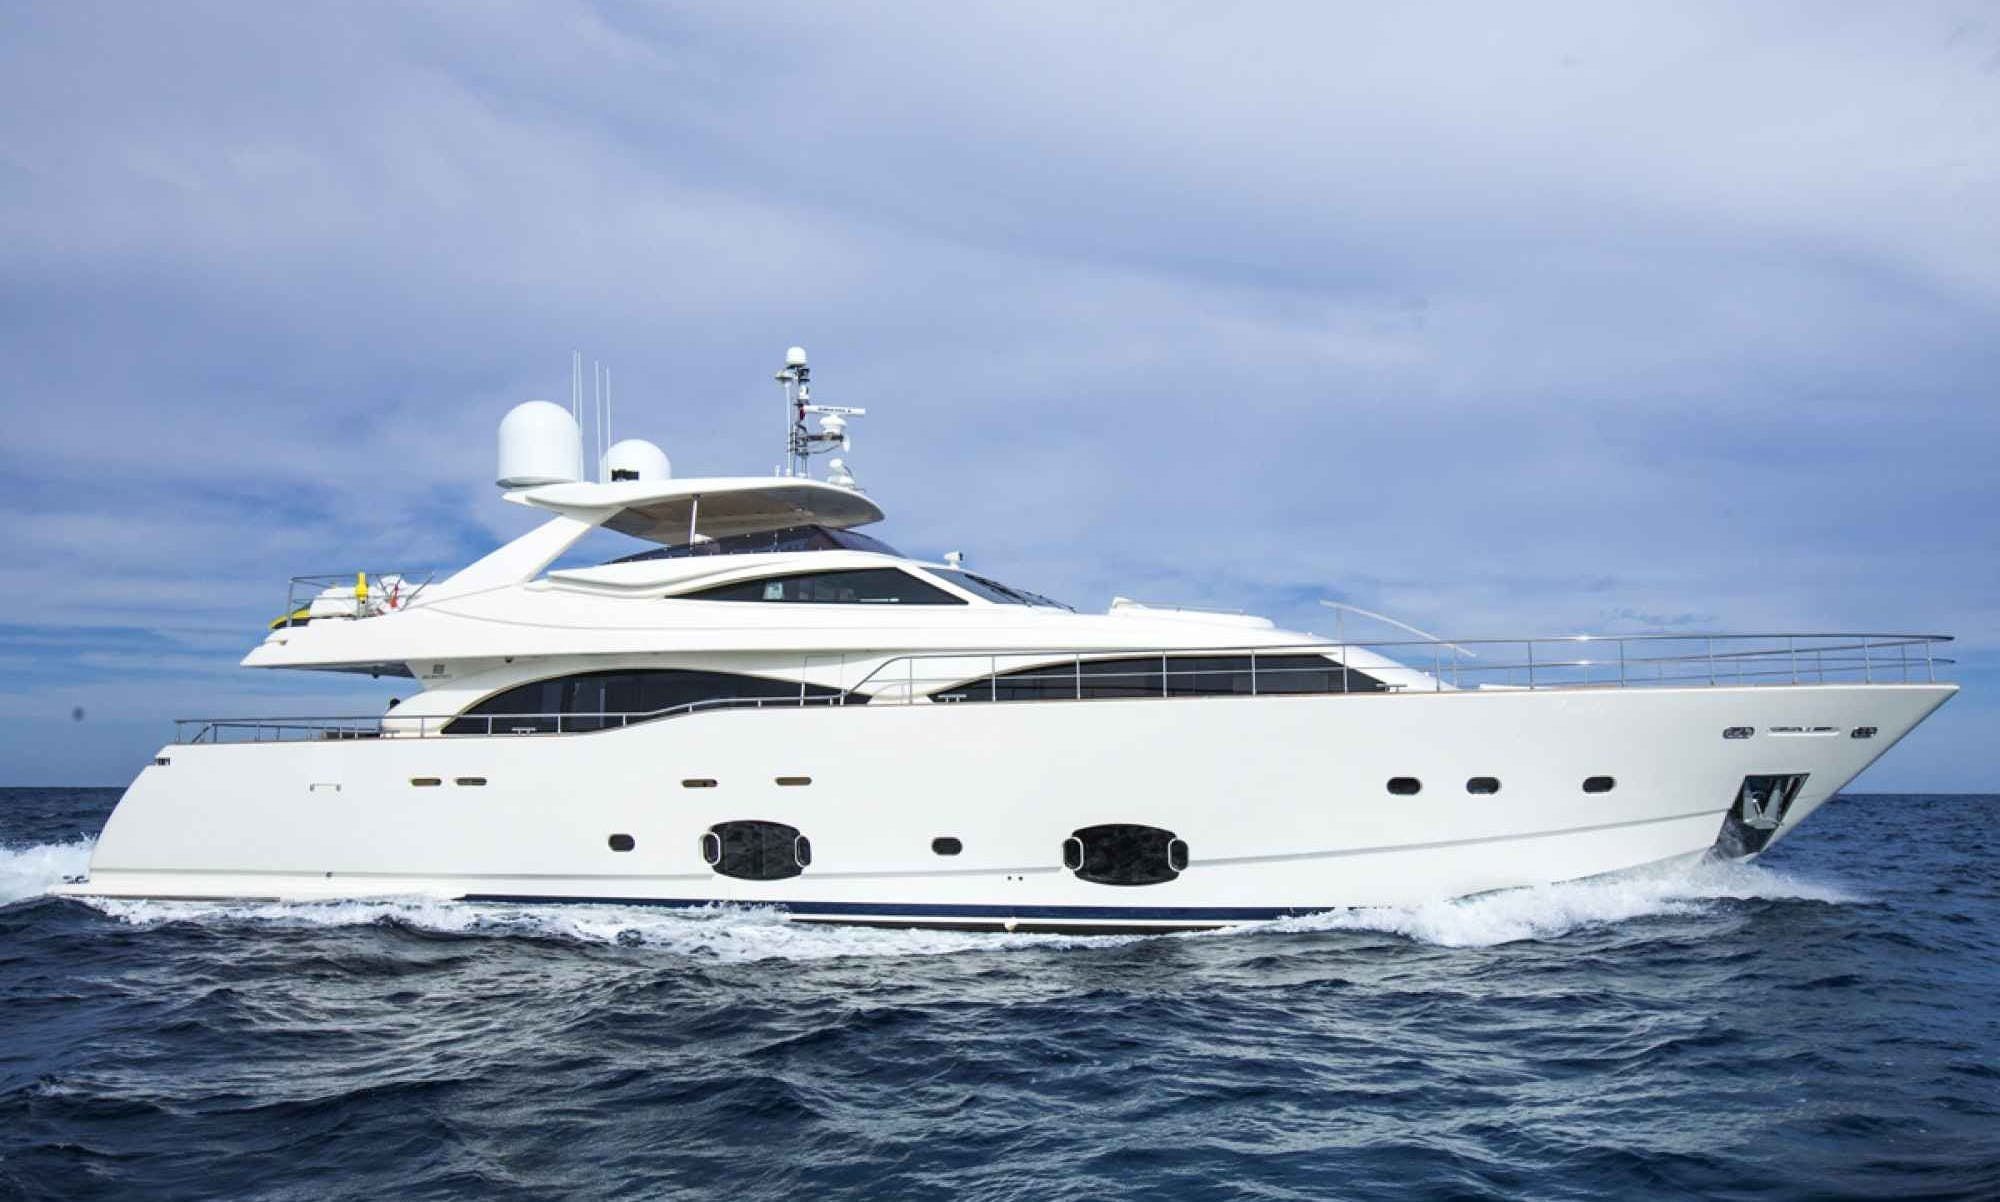 97' Ferretti State-of-the-art Mega Yacht loaded with toys